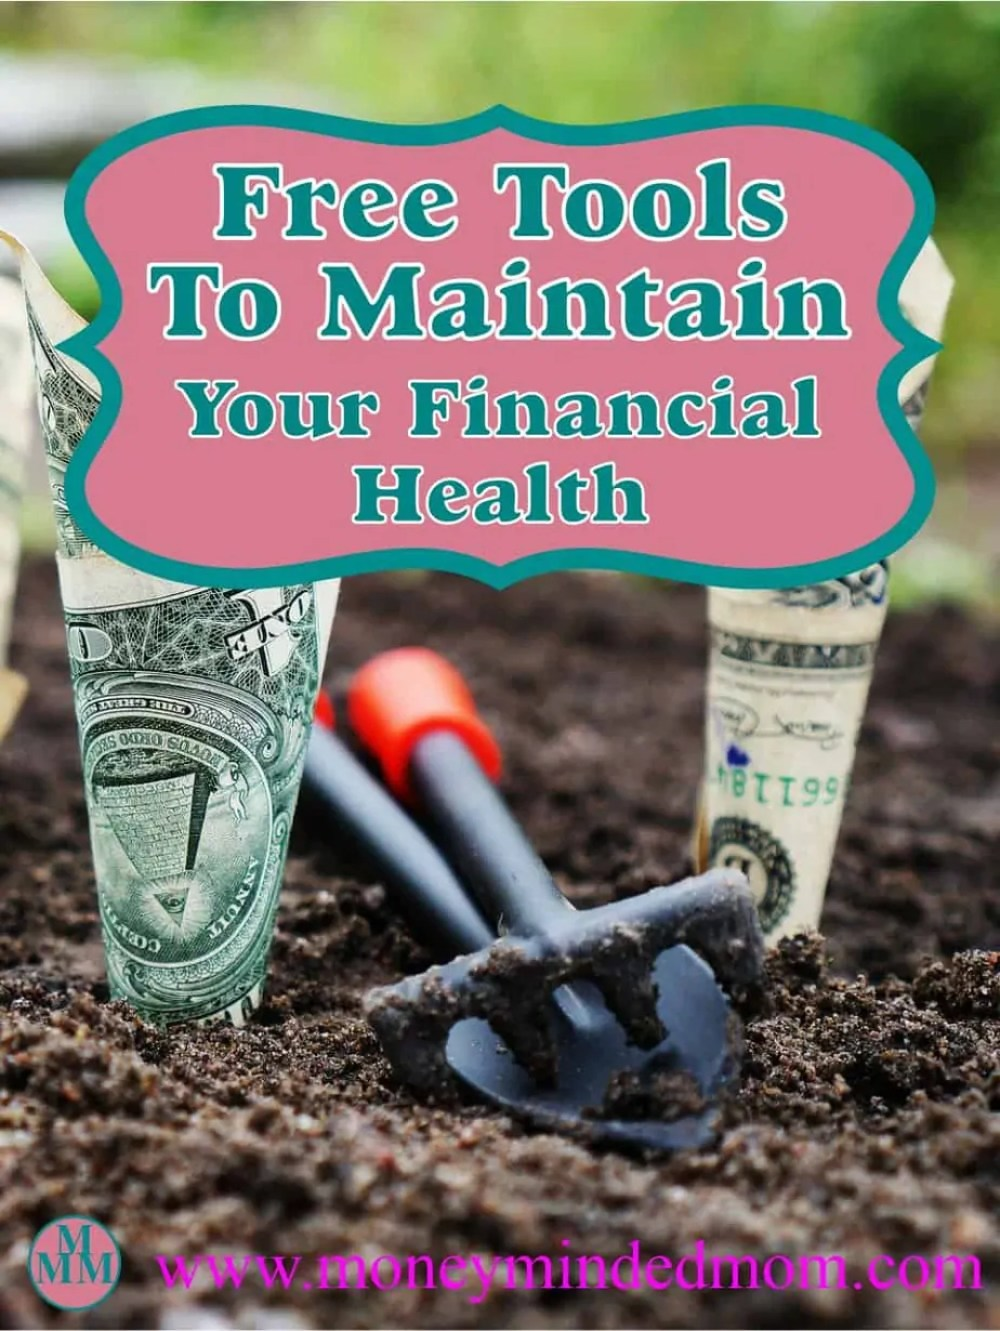 Free Tools to Maintain Your Financial Health